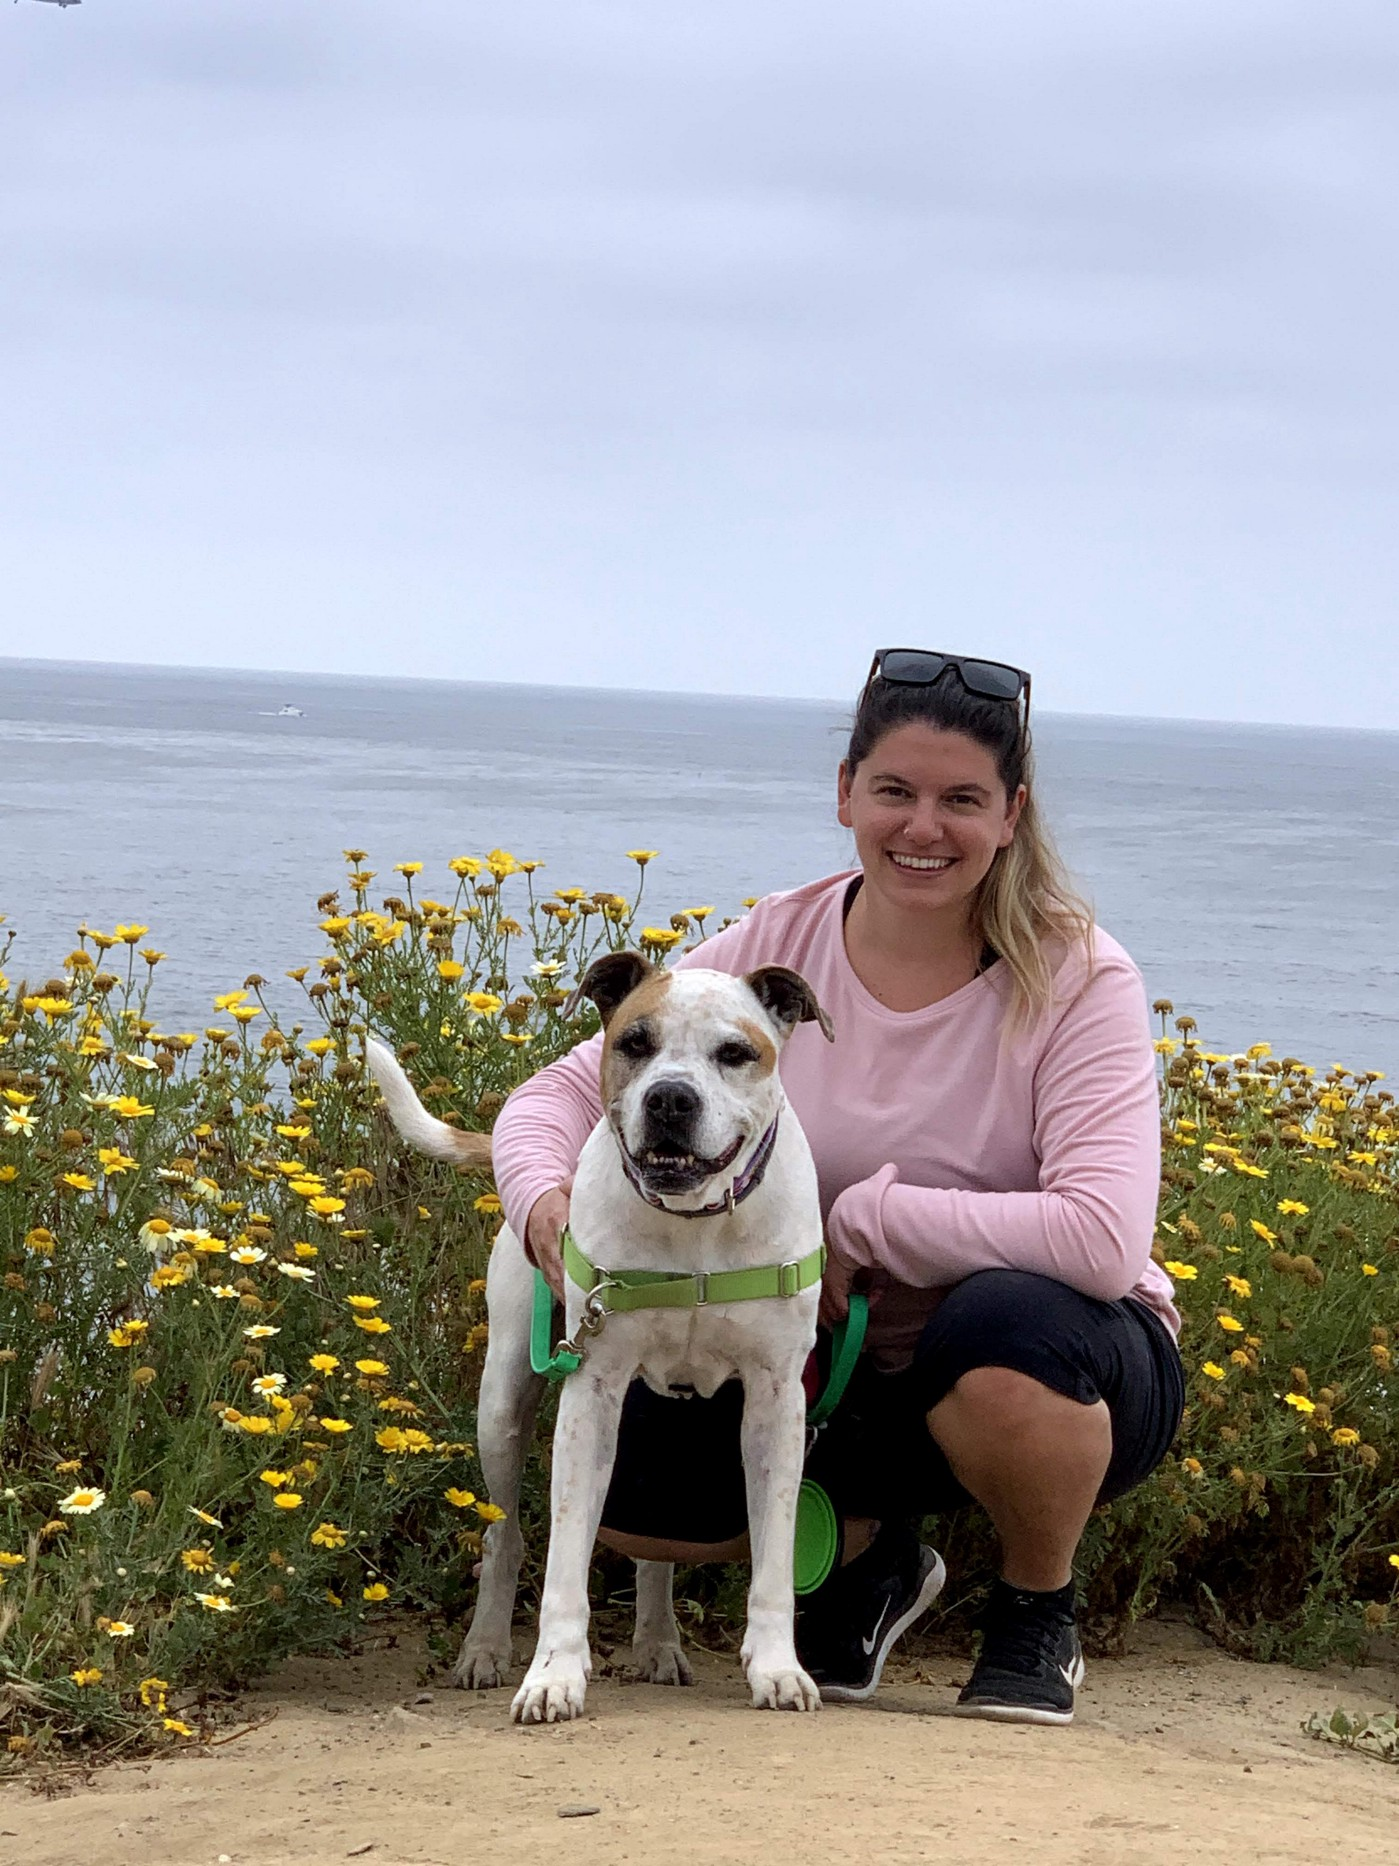 Sandra with her dog that looks like a pitbull mix in front of an ocean and yellow flowers